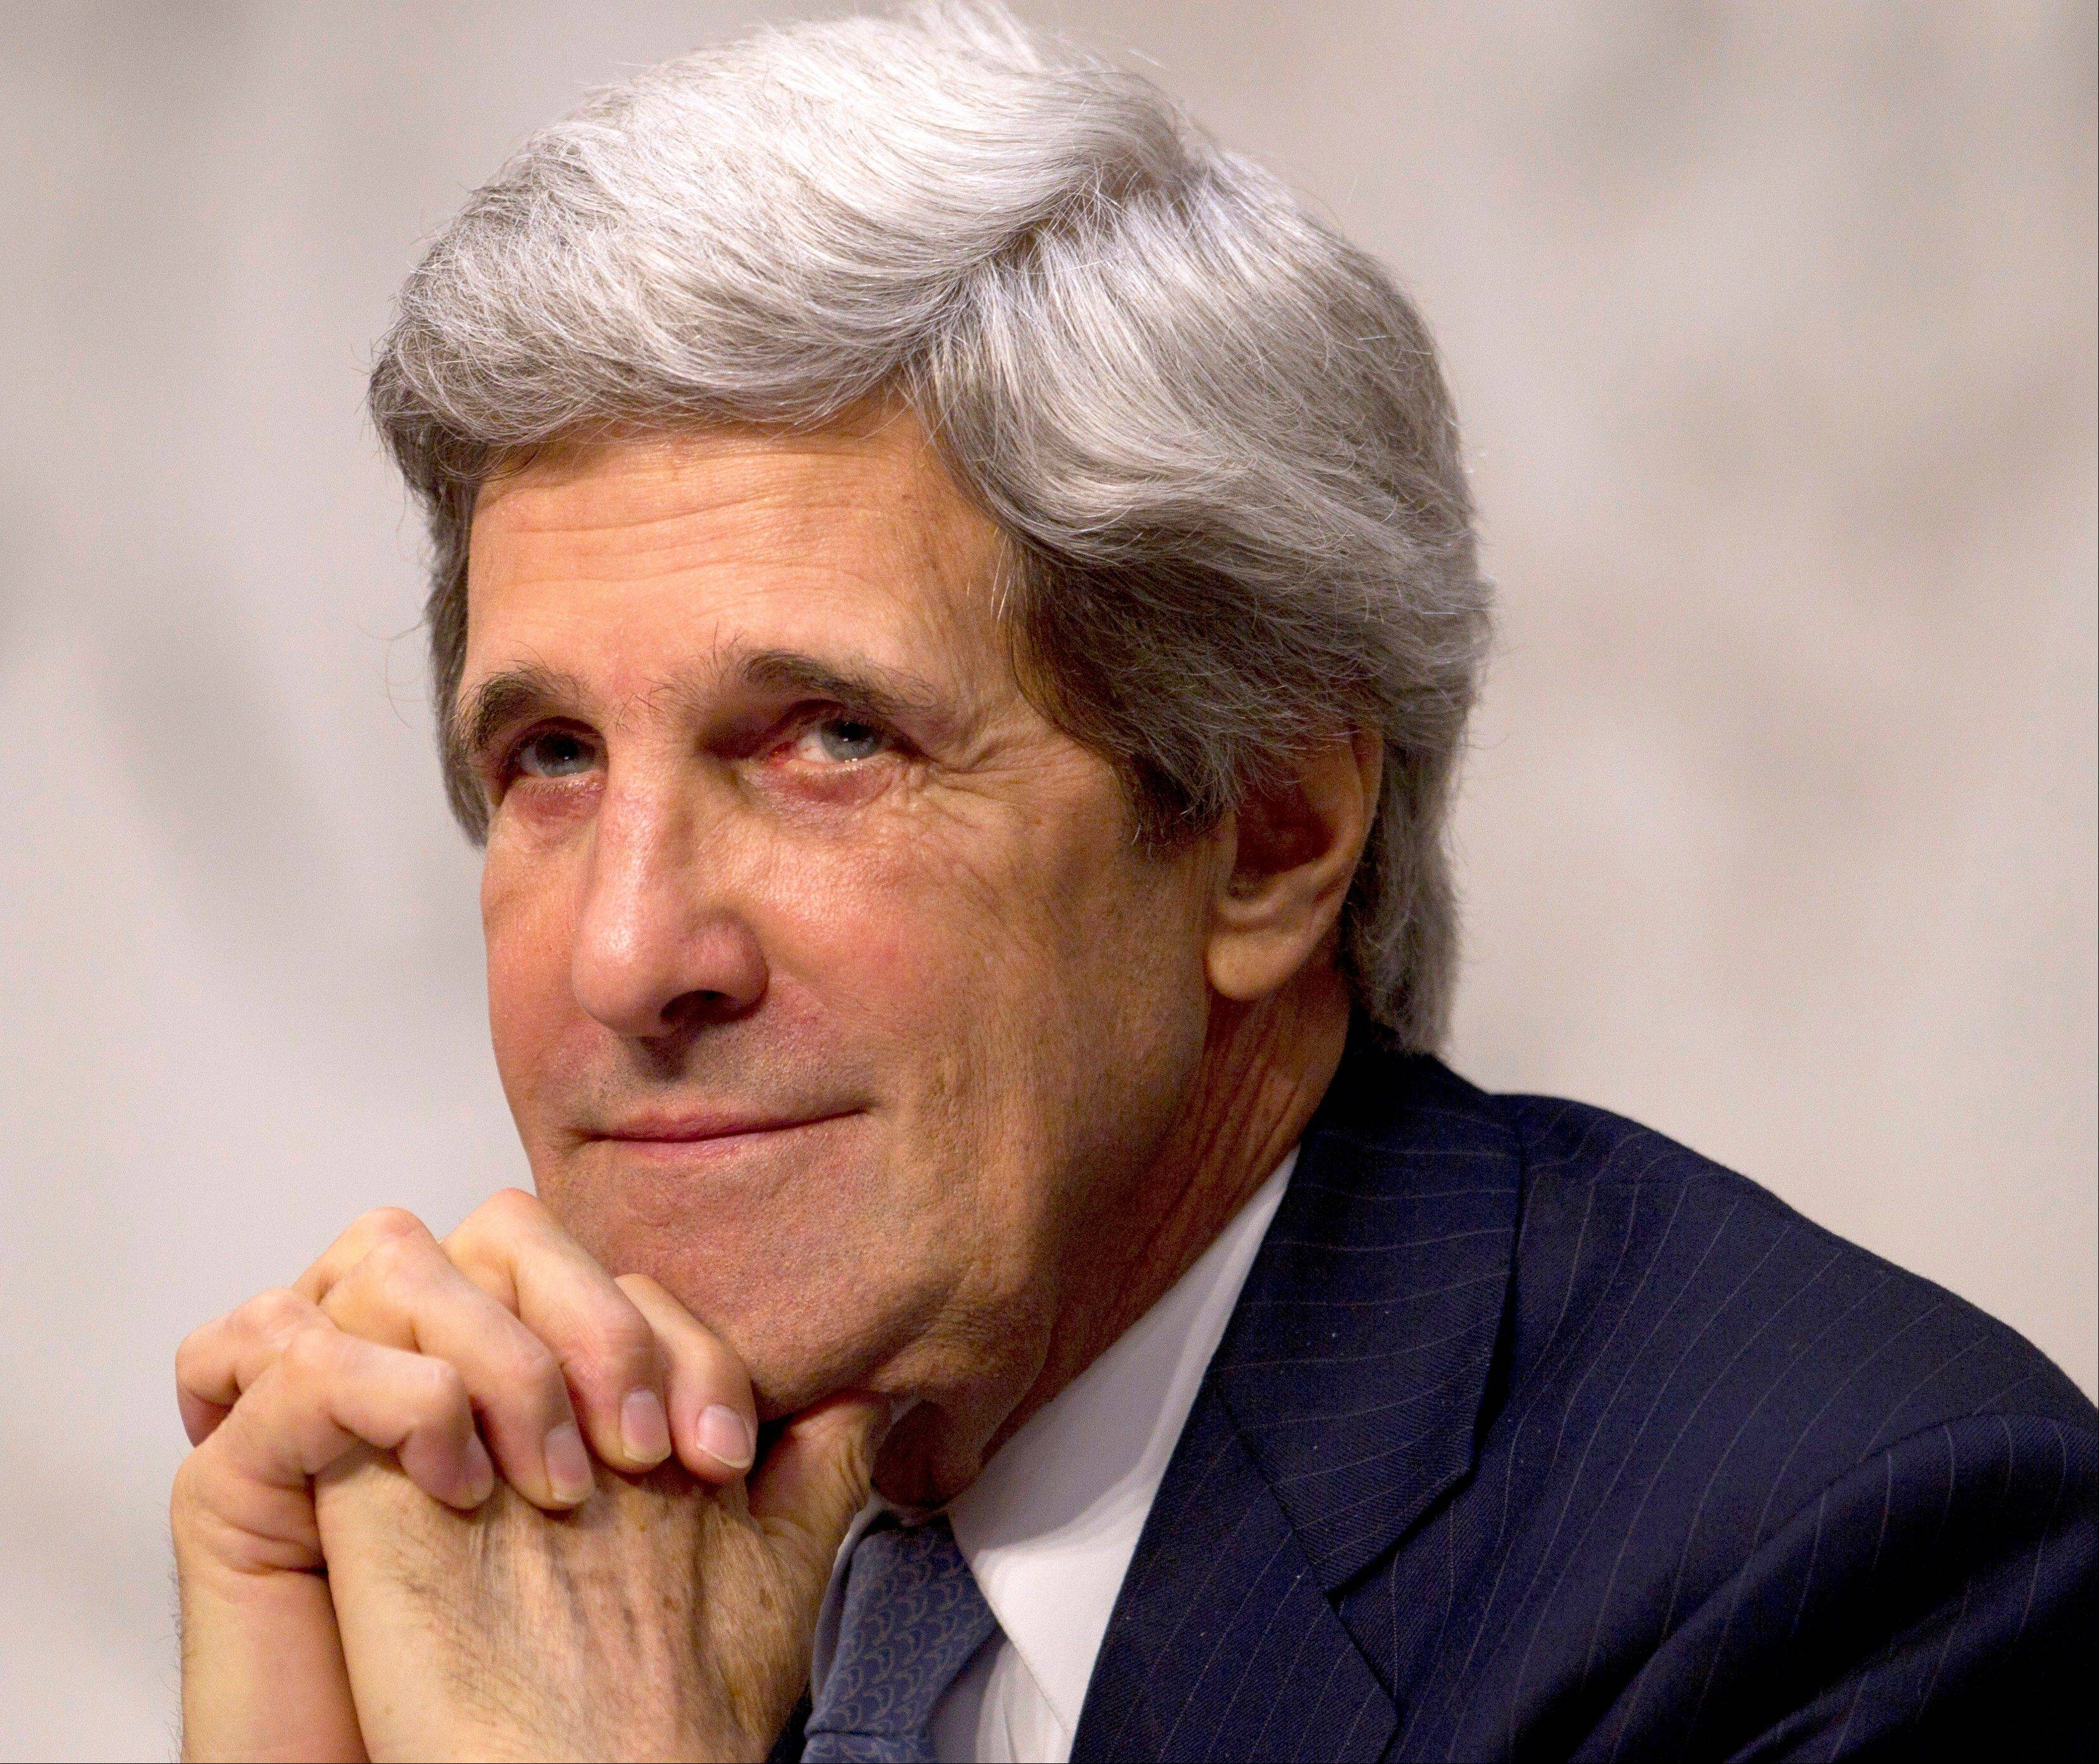 In this Feb. 28 file photo, Senate Foreign Relations Committee Chairman Sen. John Kerry, D-Mass., is seen on Capitol Hill in Washington. Kerry�s speech to the Democratic National Convention Thursday night is an audition of sorts for secretary of state if President Barack Obama is re-elected.